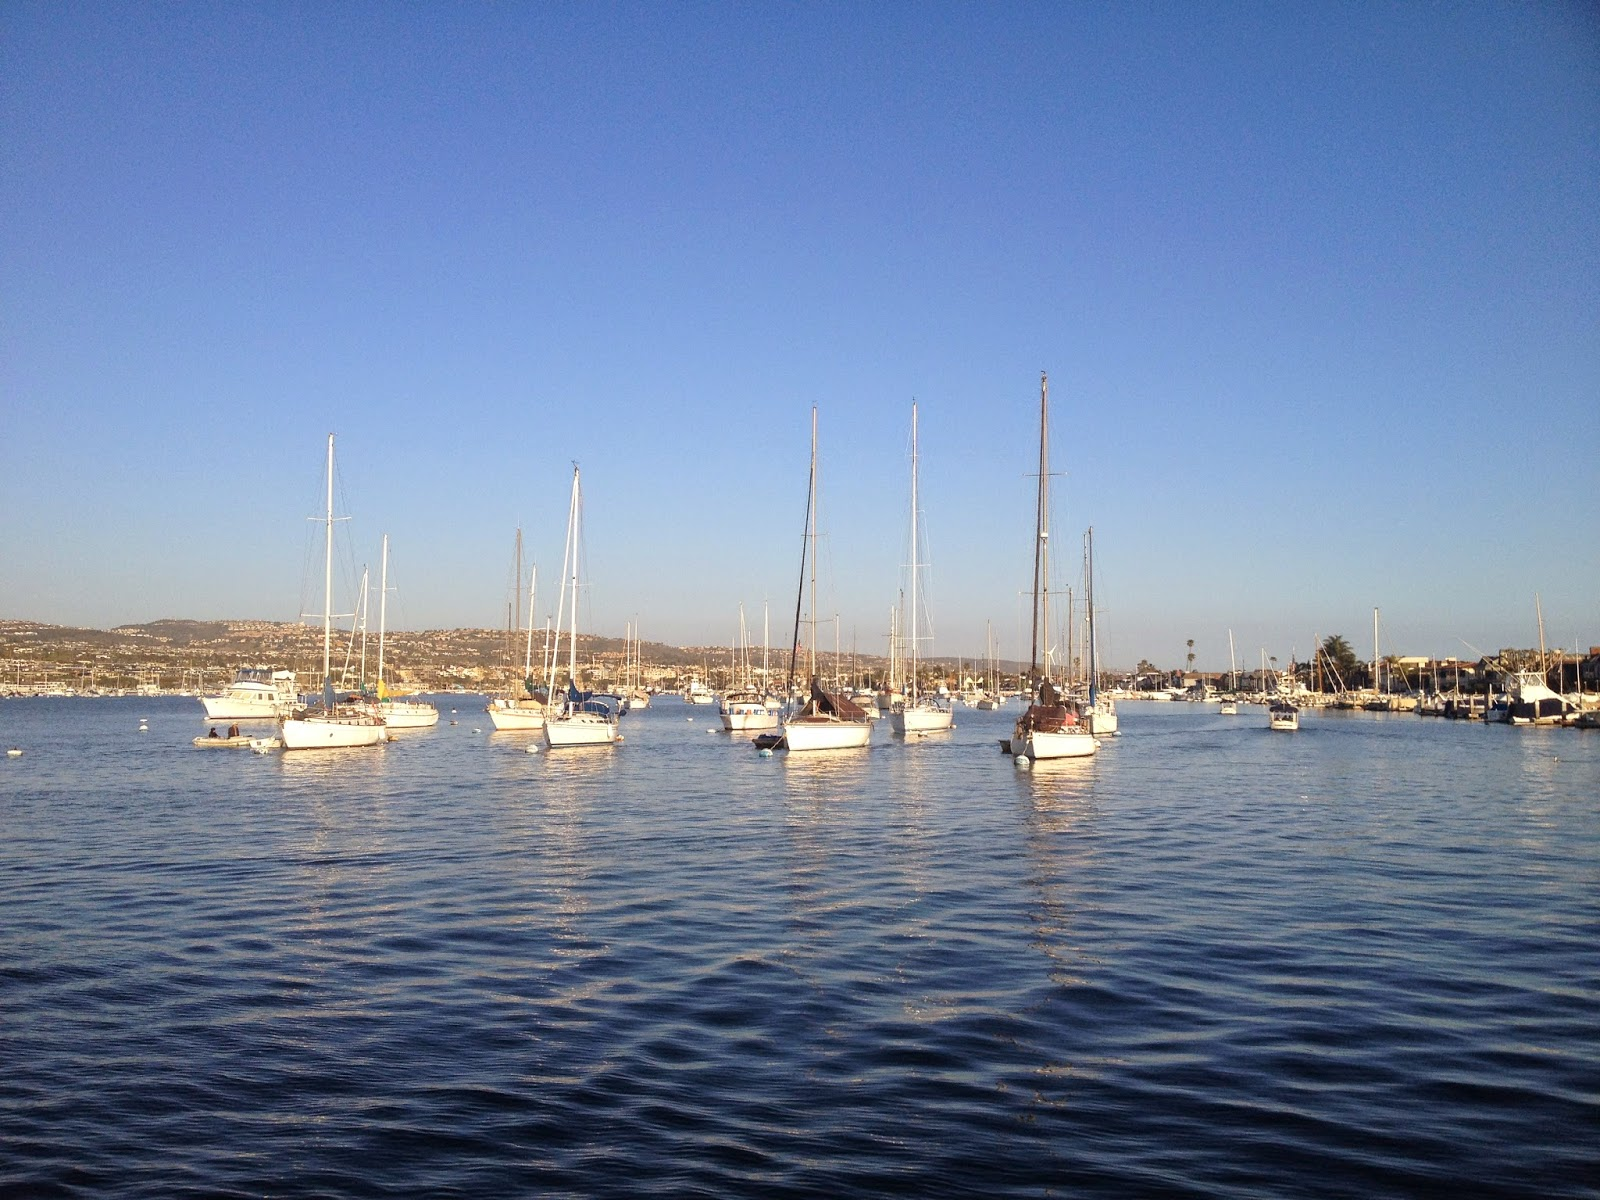 Sailboats in Balboa Harbor - Newport Beach, CA